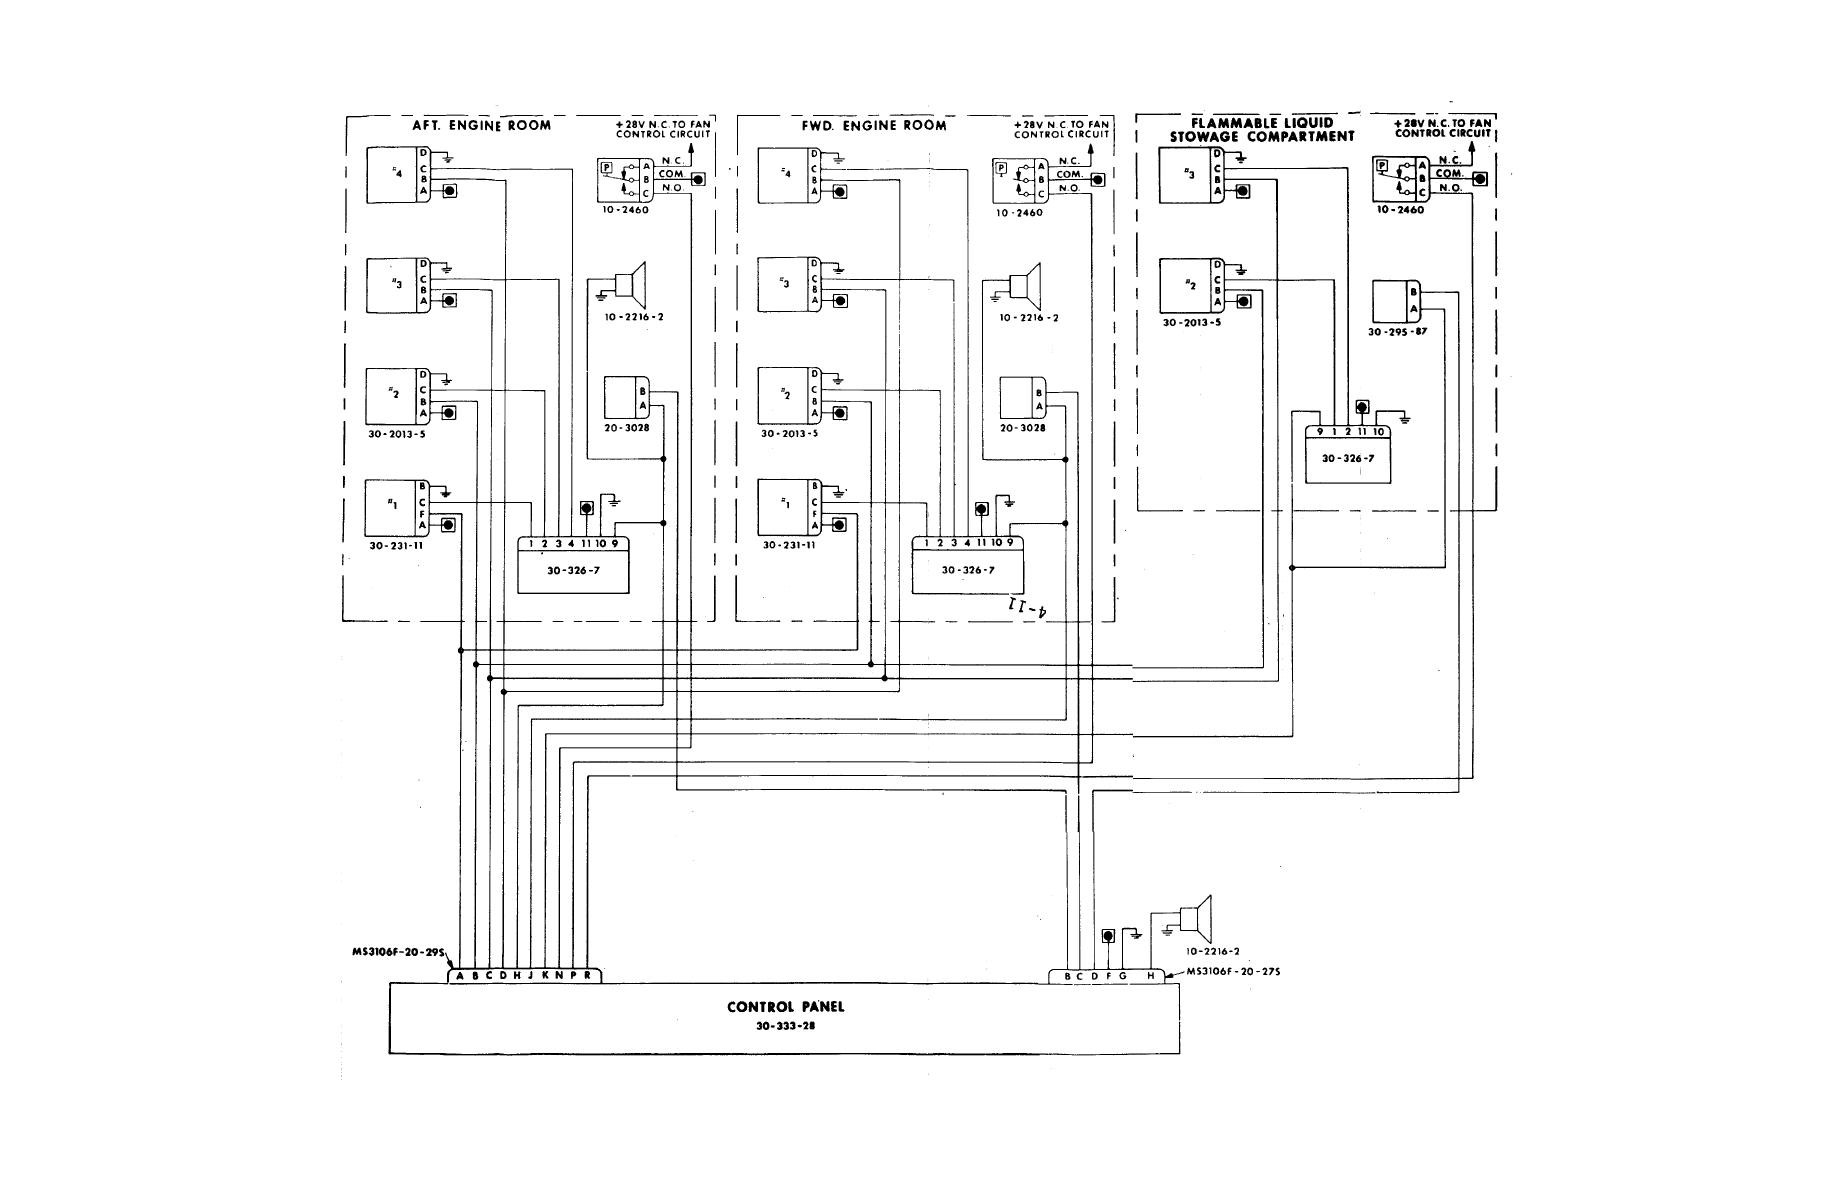 addressable fire alarm wiring diagram fitfathers baumatic cooker hood class b sample collection tm 55 1905 219 14 im to